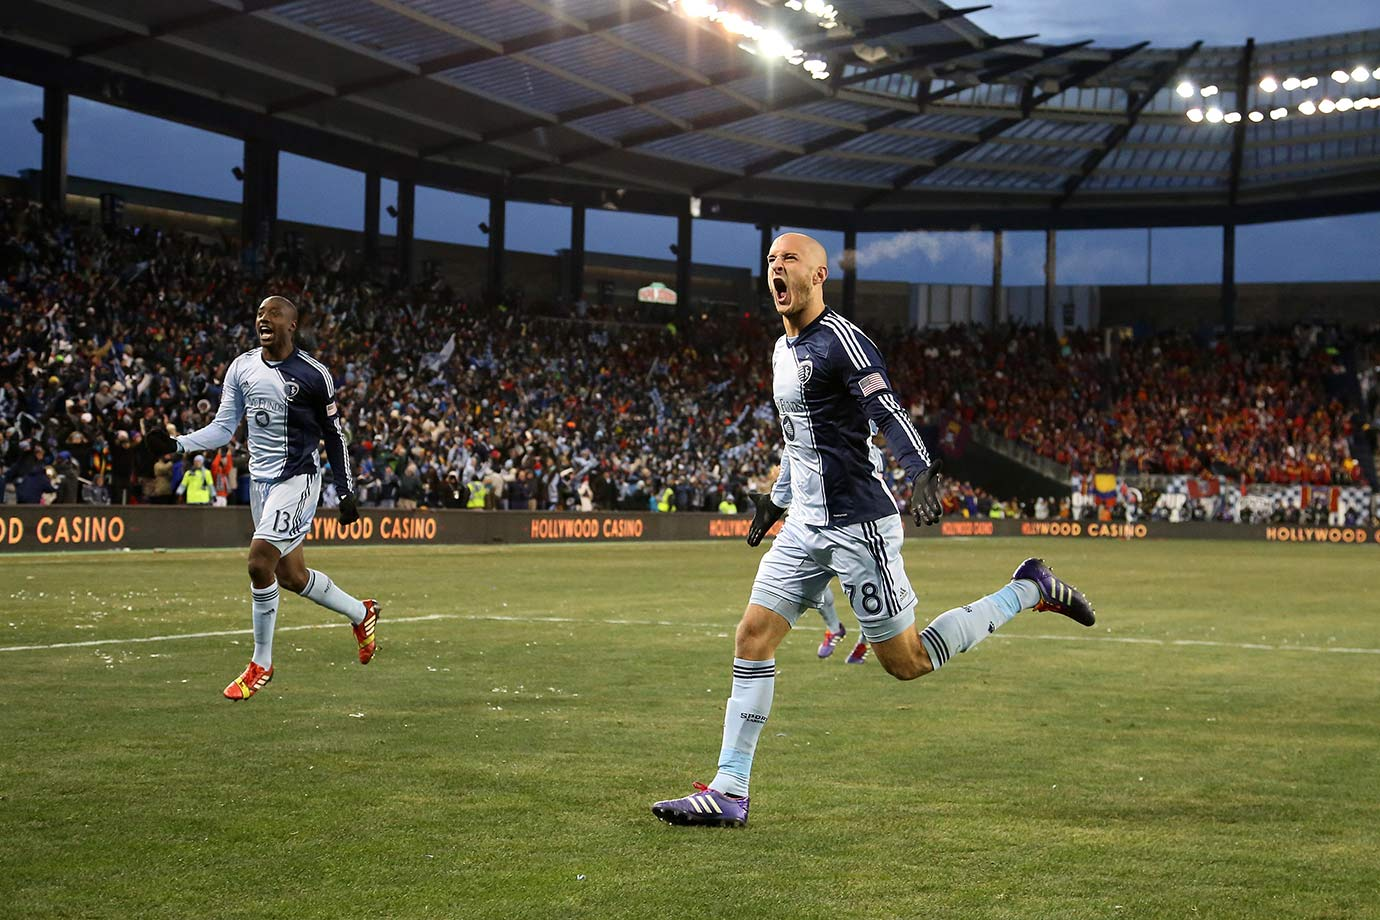 2013 — Sporting Kansas City (beat Real Salt Lake in penalty kicks after 1-1 draw)